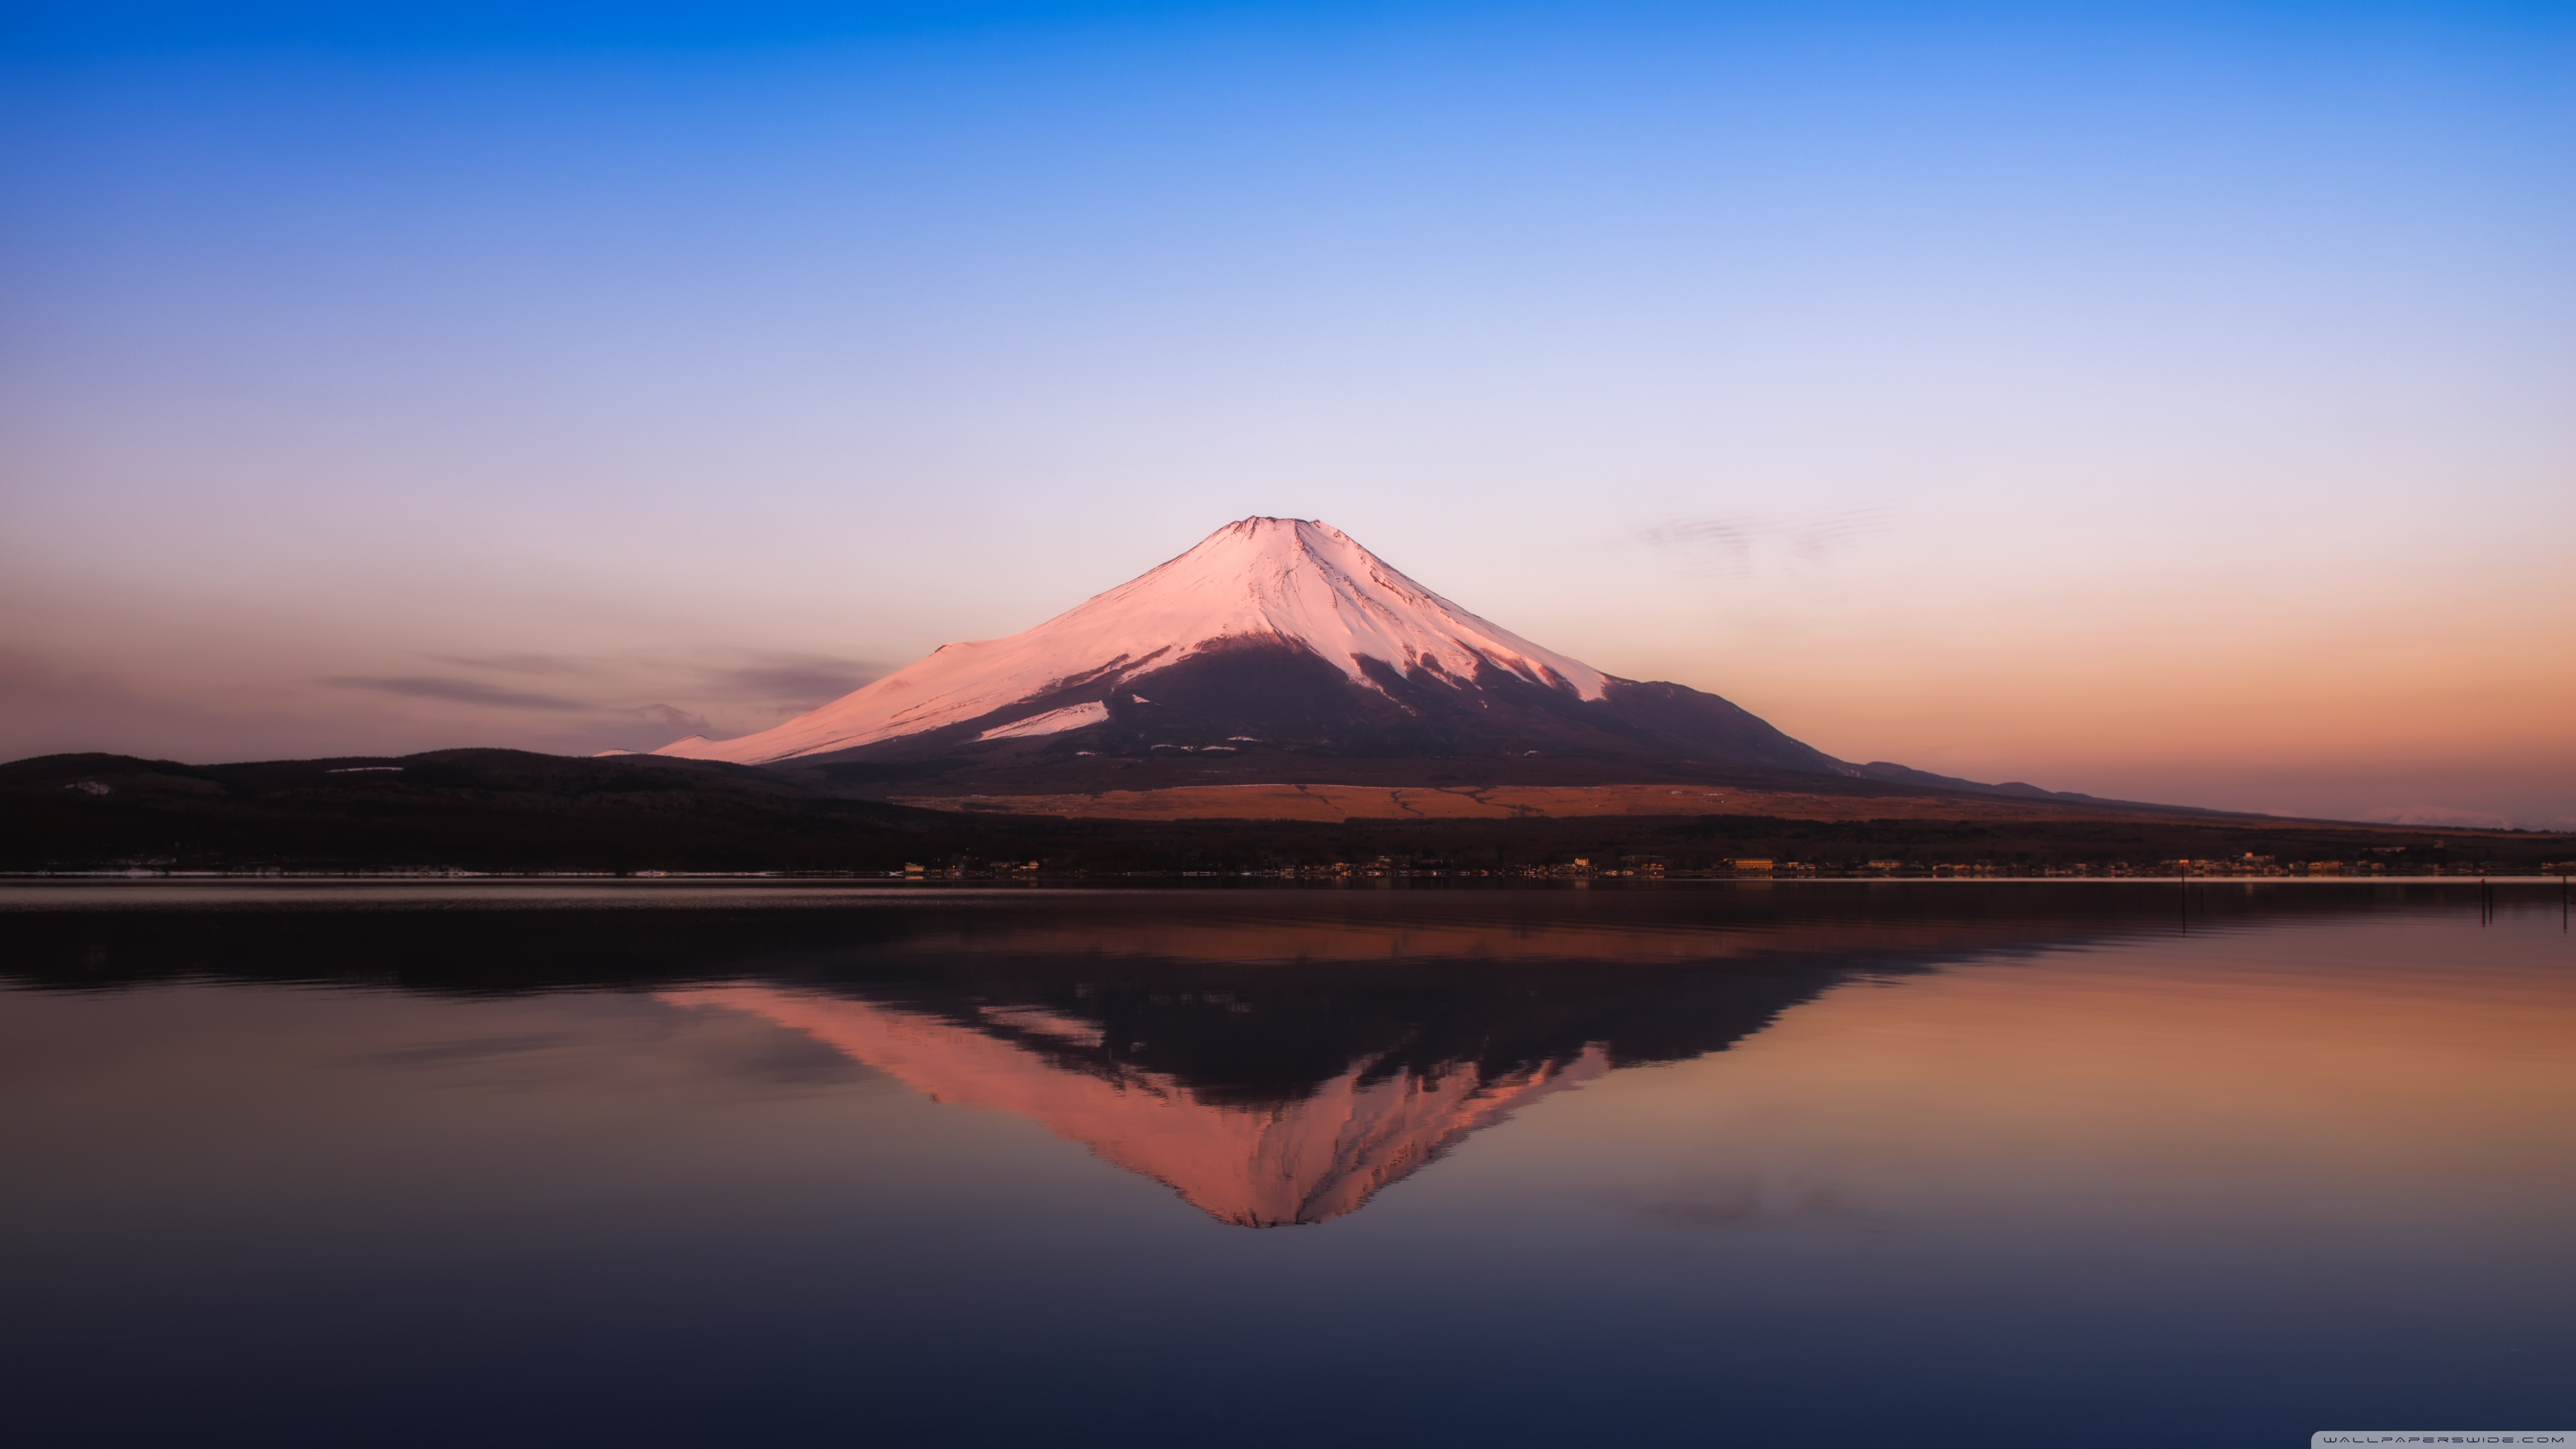 Mount Fuji Wallpapers 4K 3840x2160 WallpapersExpertcom 3840x2160